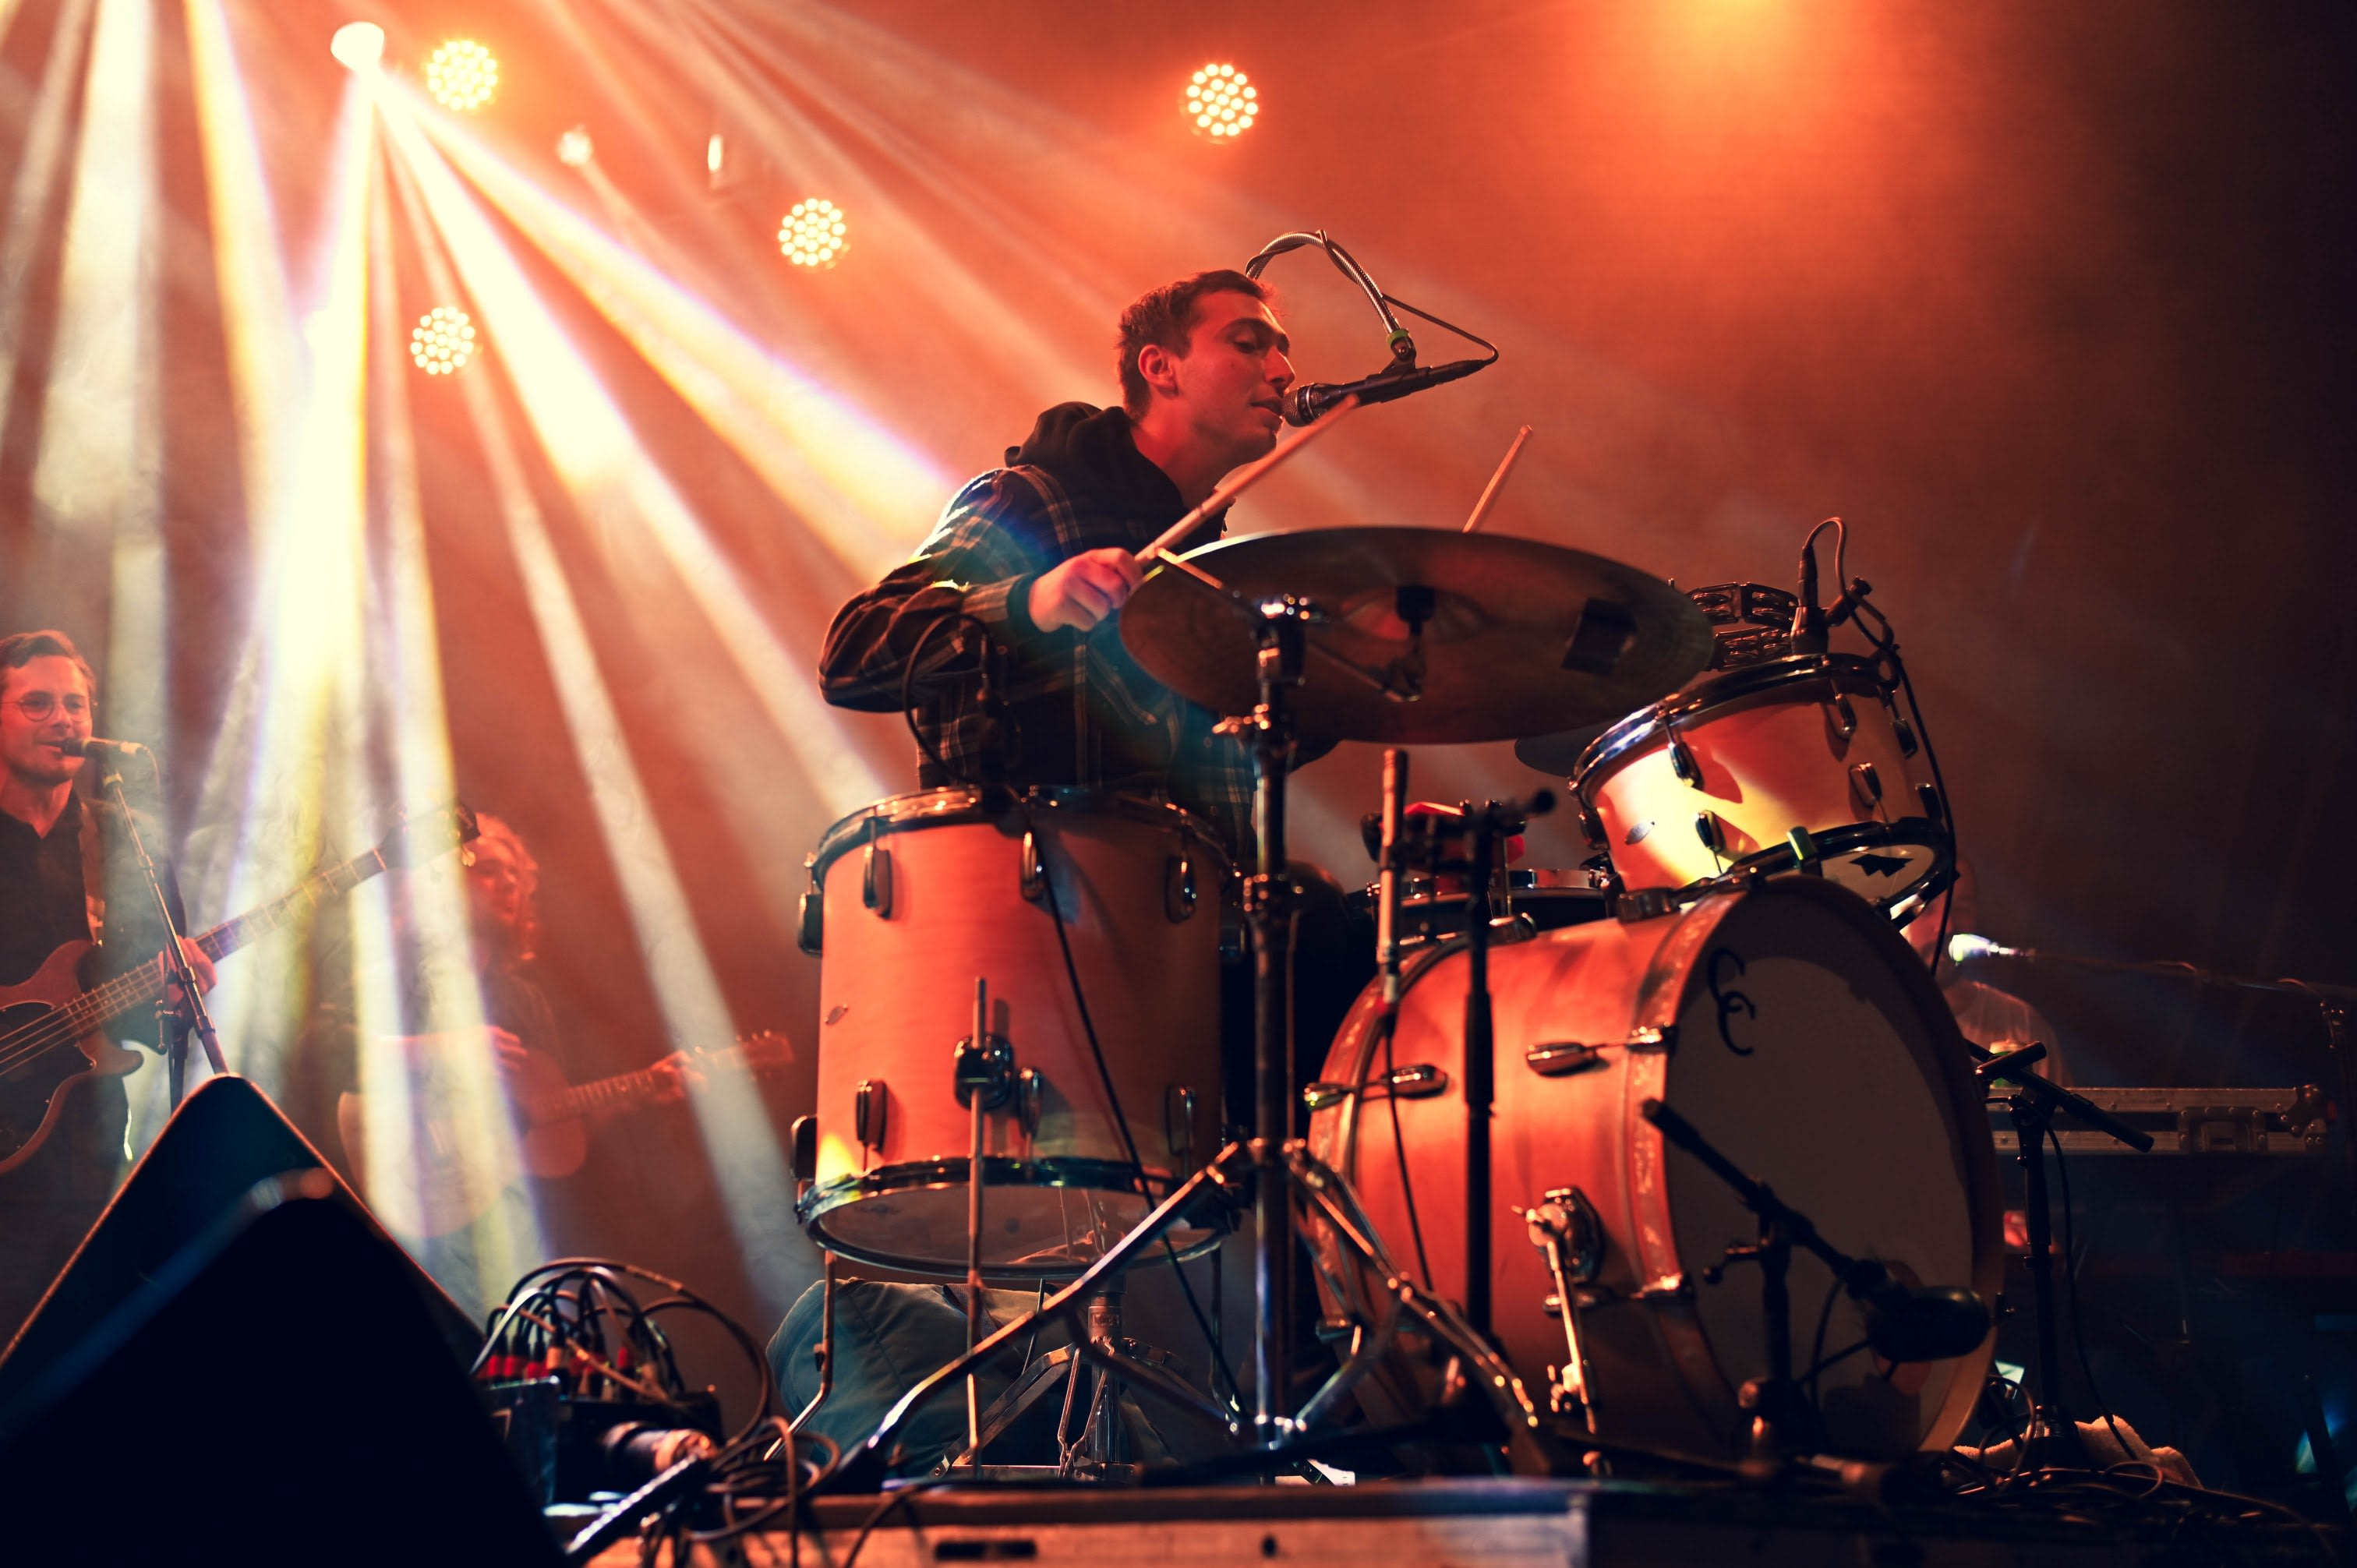 The drummer from Whitney performing at the Reykjavik Art Museum as part of Iceland Airwaves 2019